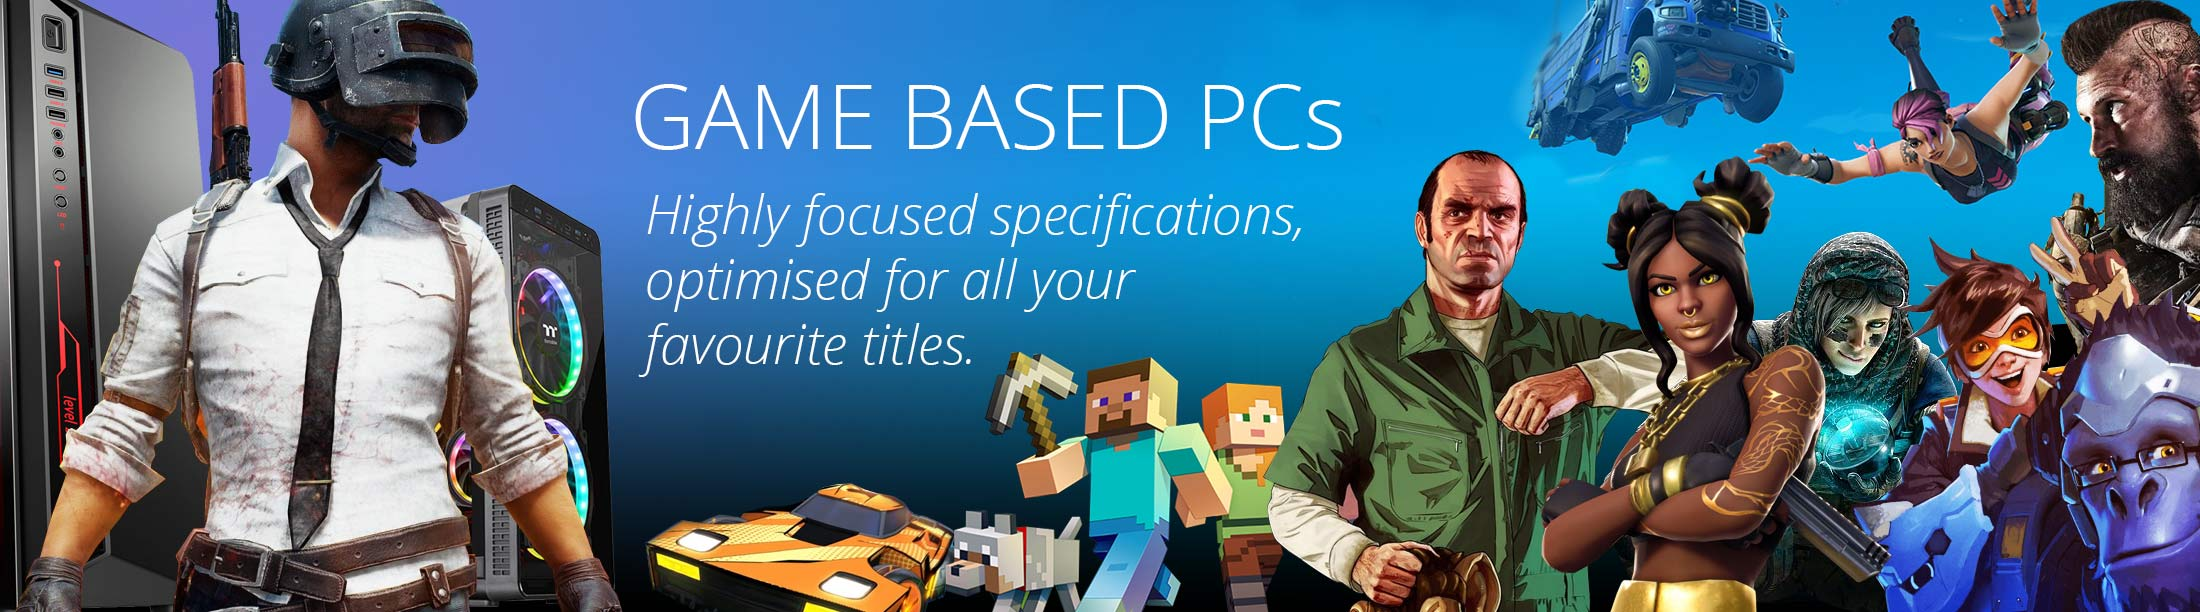 Game Based PCs - highly focused specifications, optimised for all your favourite titles